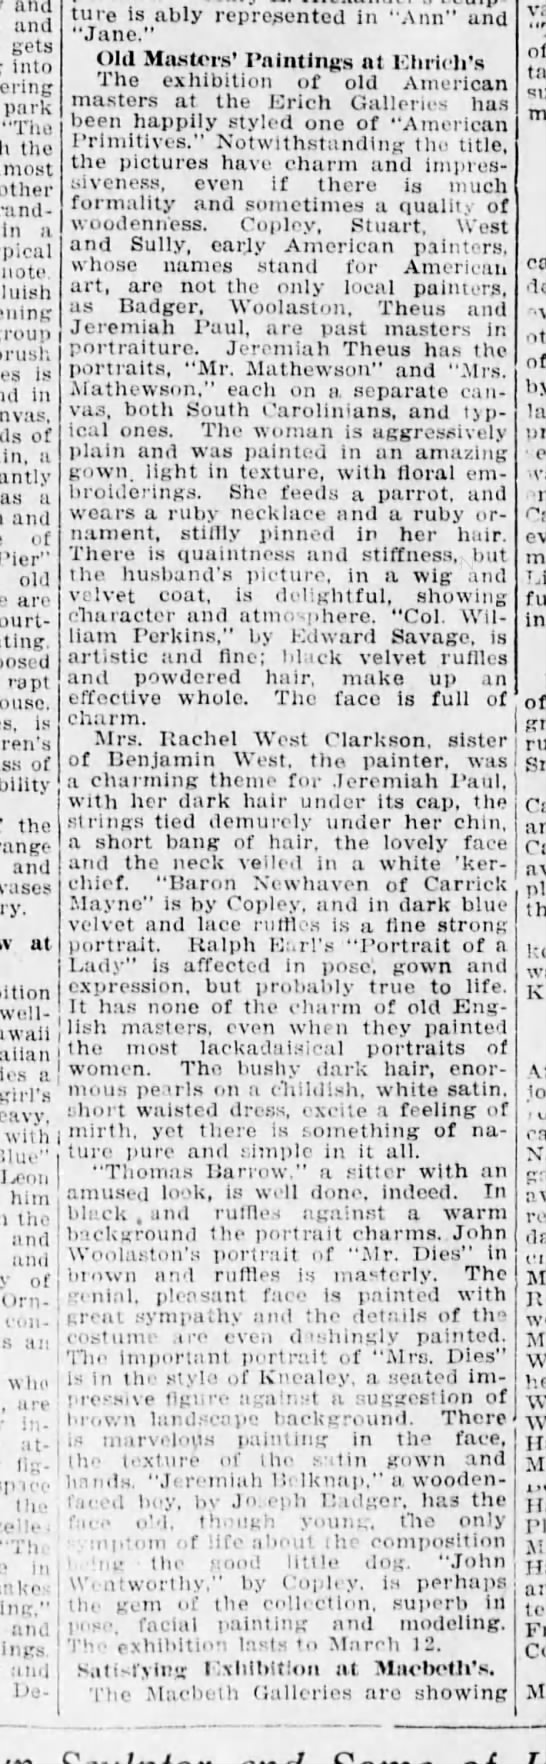 "Brooklyn Daily Eagle, Feb. 23, 1919, p. 52 - and and gets into park ""The the almost in a..."